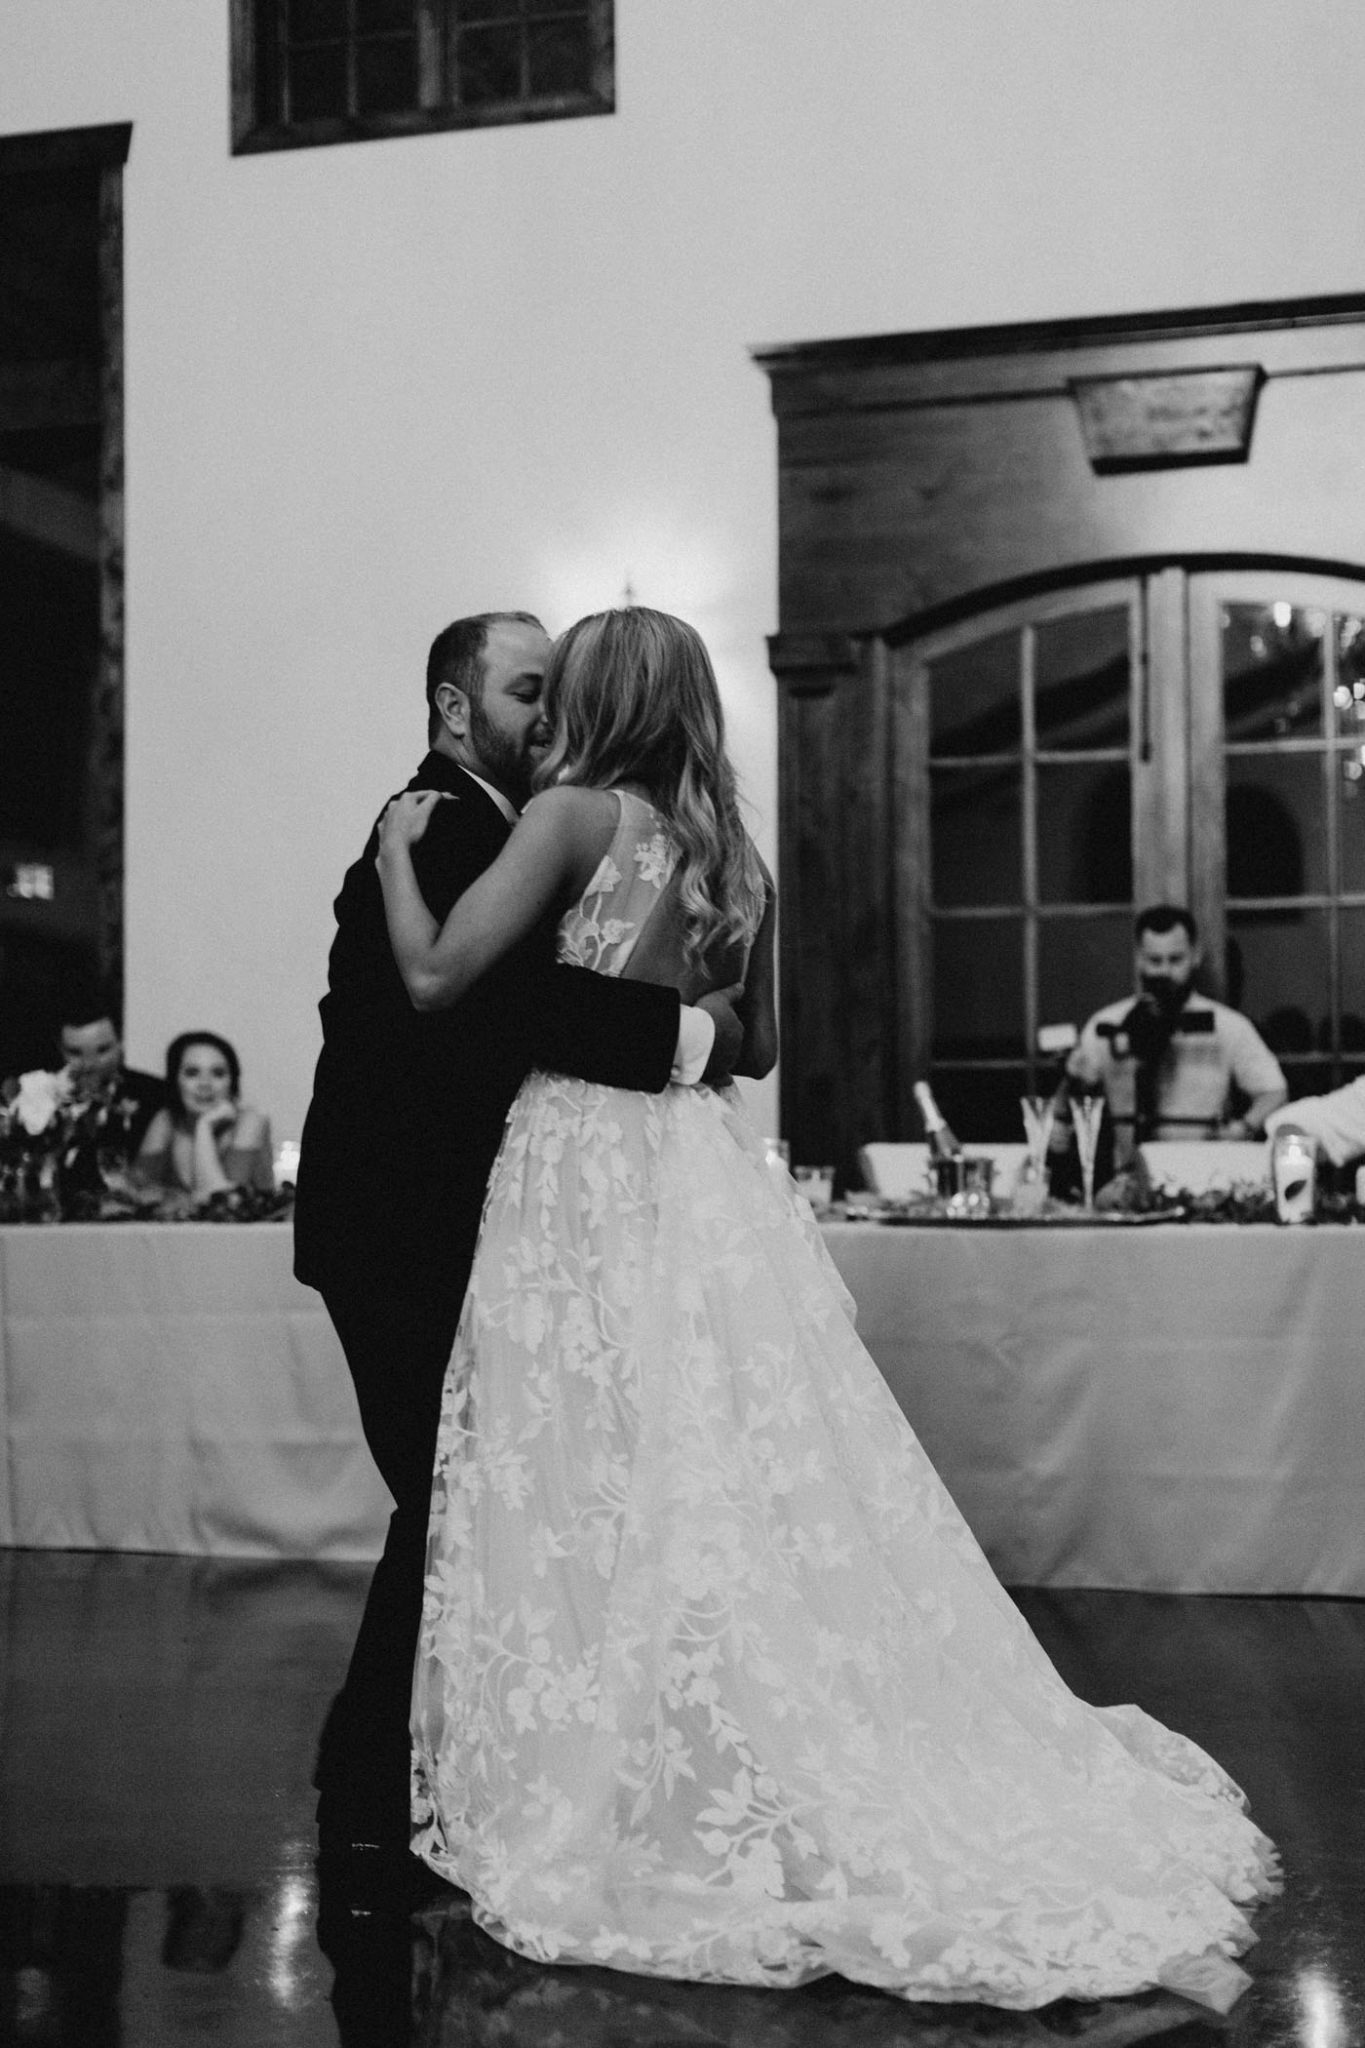 black and white photo of bride and groom sharing their first dance